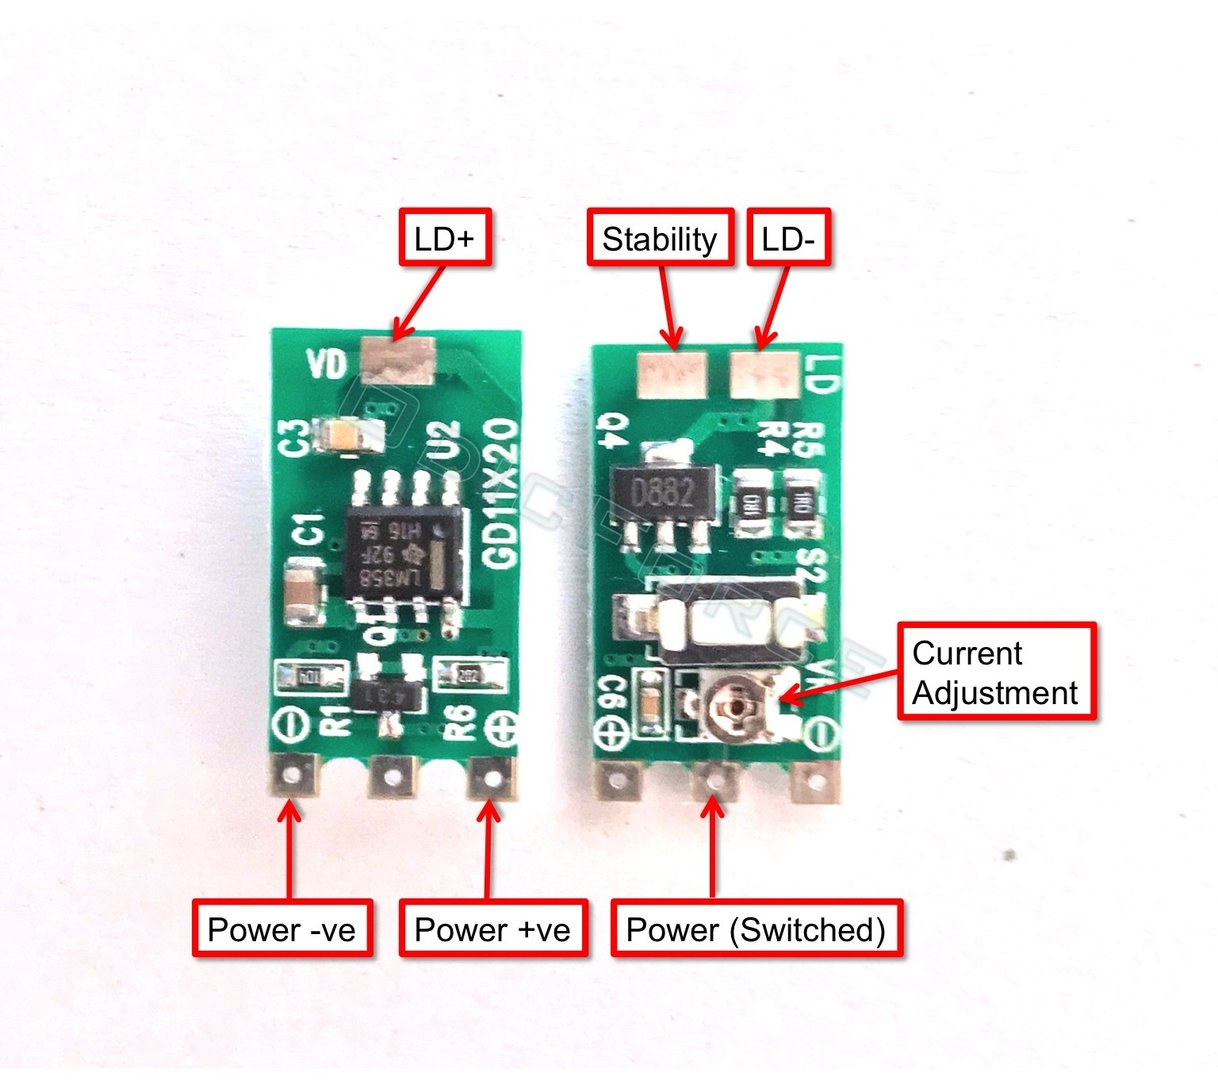 50 - 400mA LM358 Constant Current Driver, 3.5 -5.0V - Hand-held lasers and Modules V2